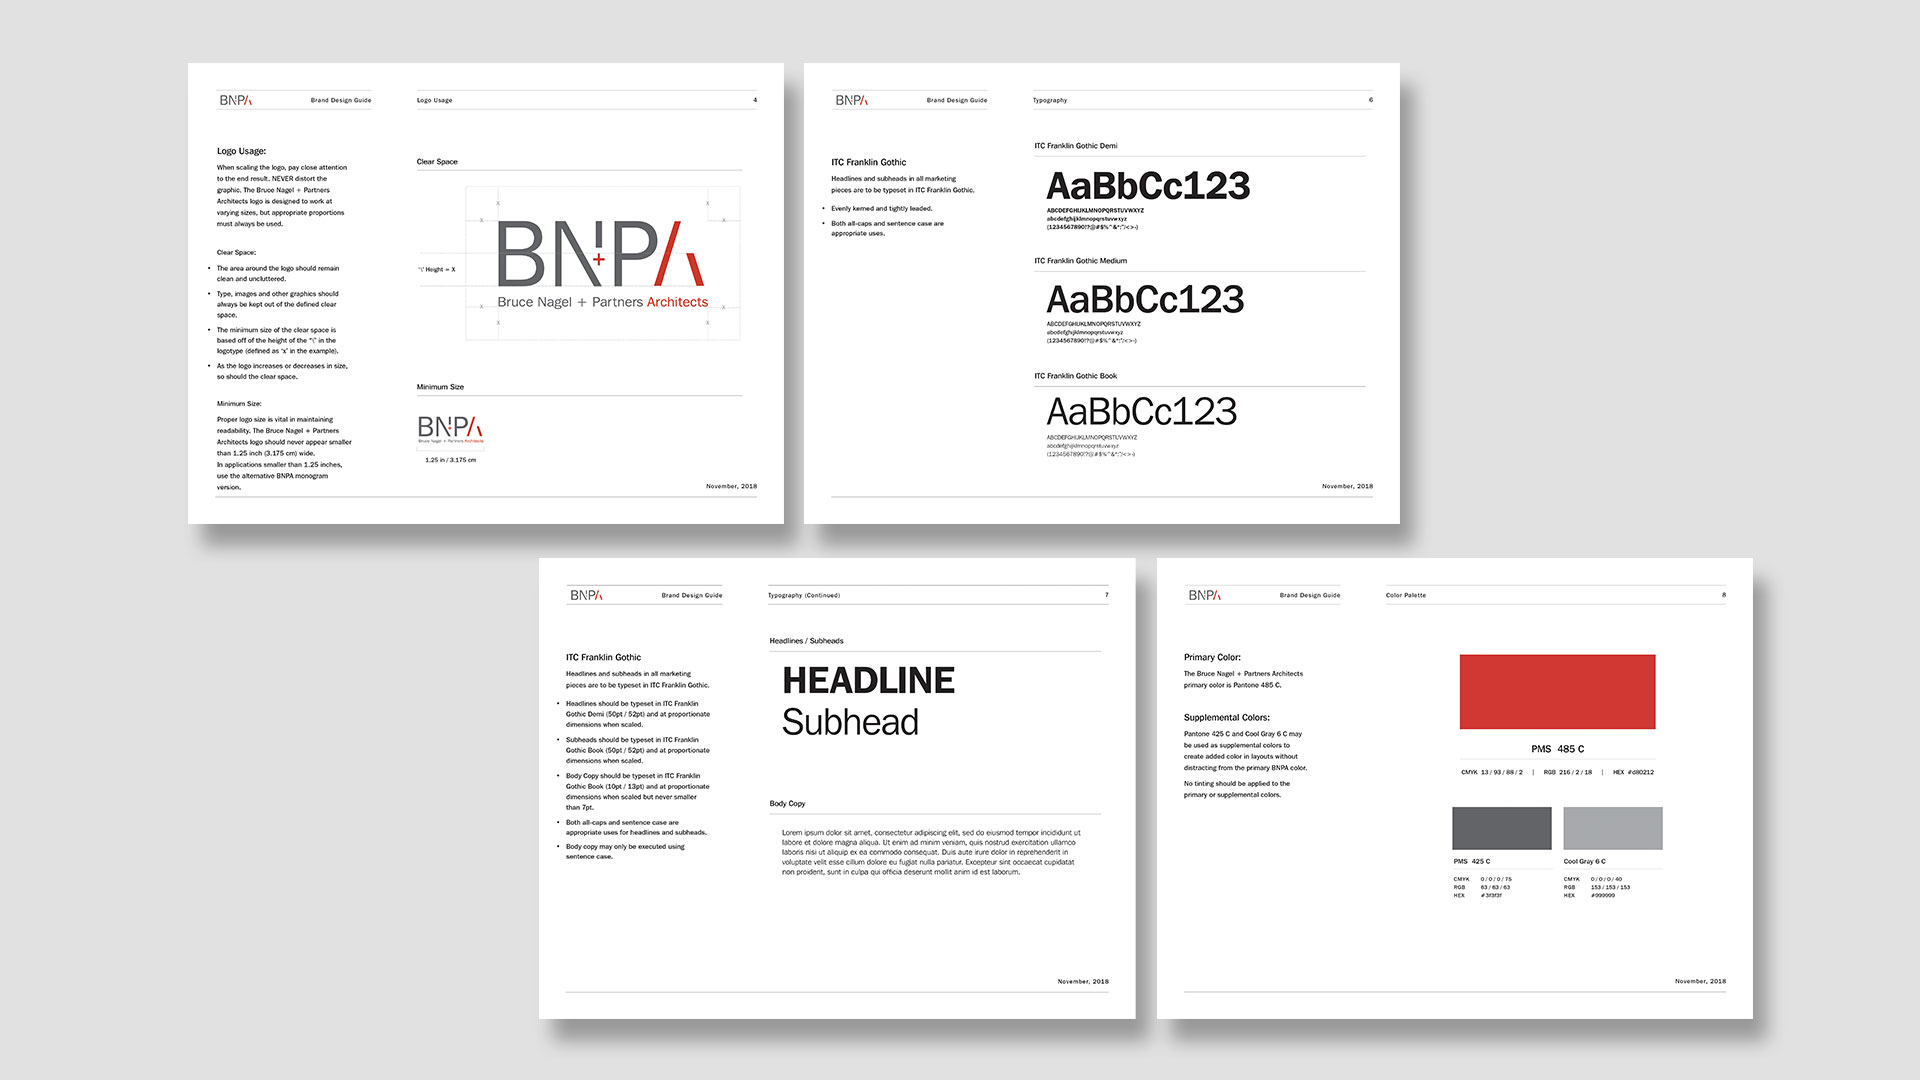 Branding & Design Guidelines - Bruce Nagel and Partners Architects, Dead on Design